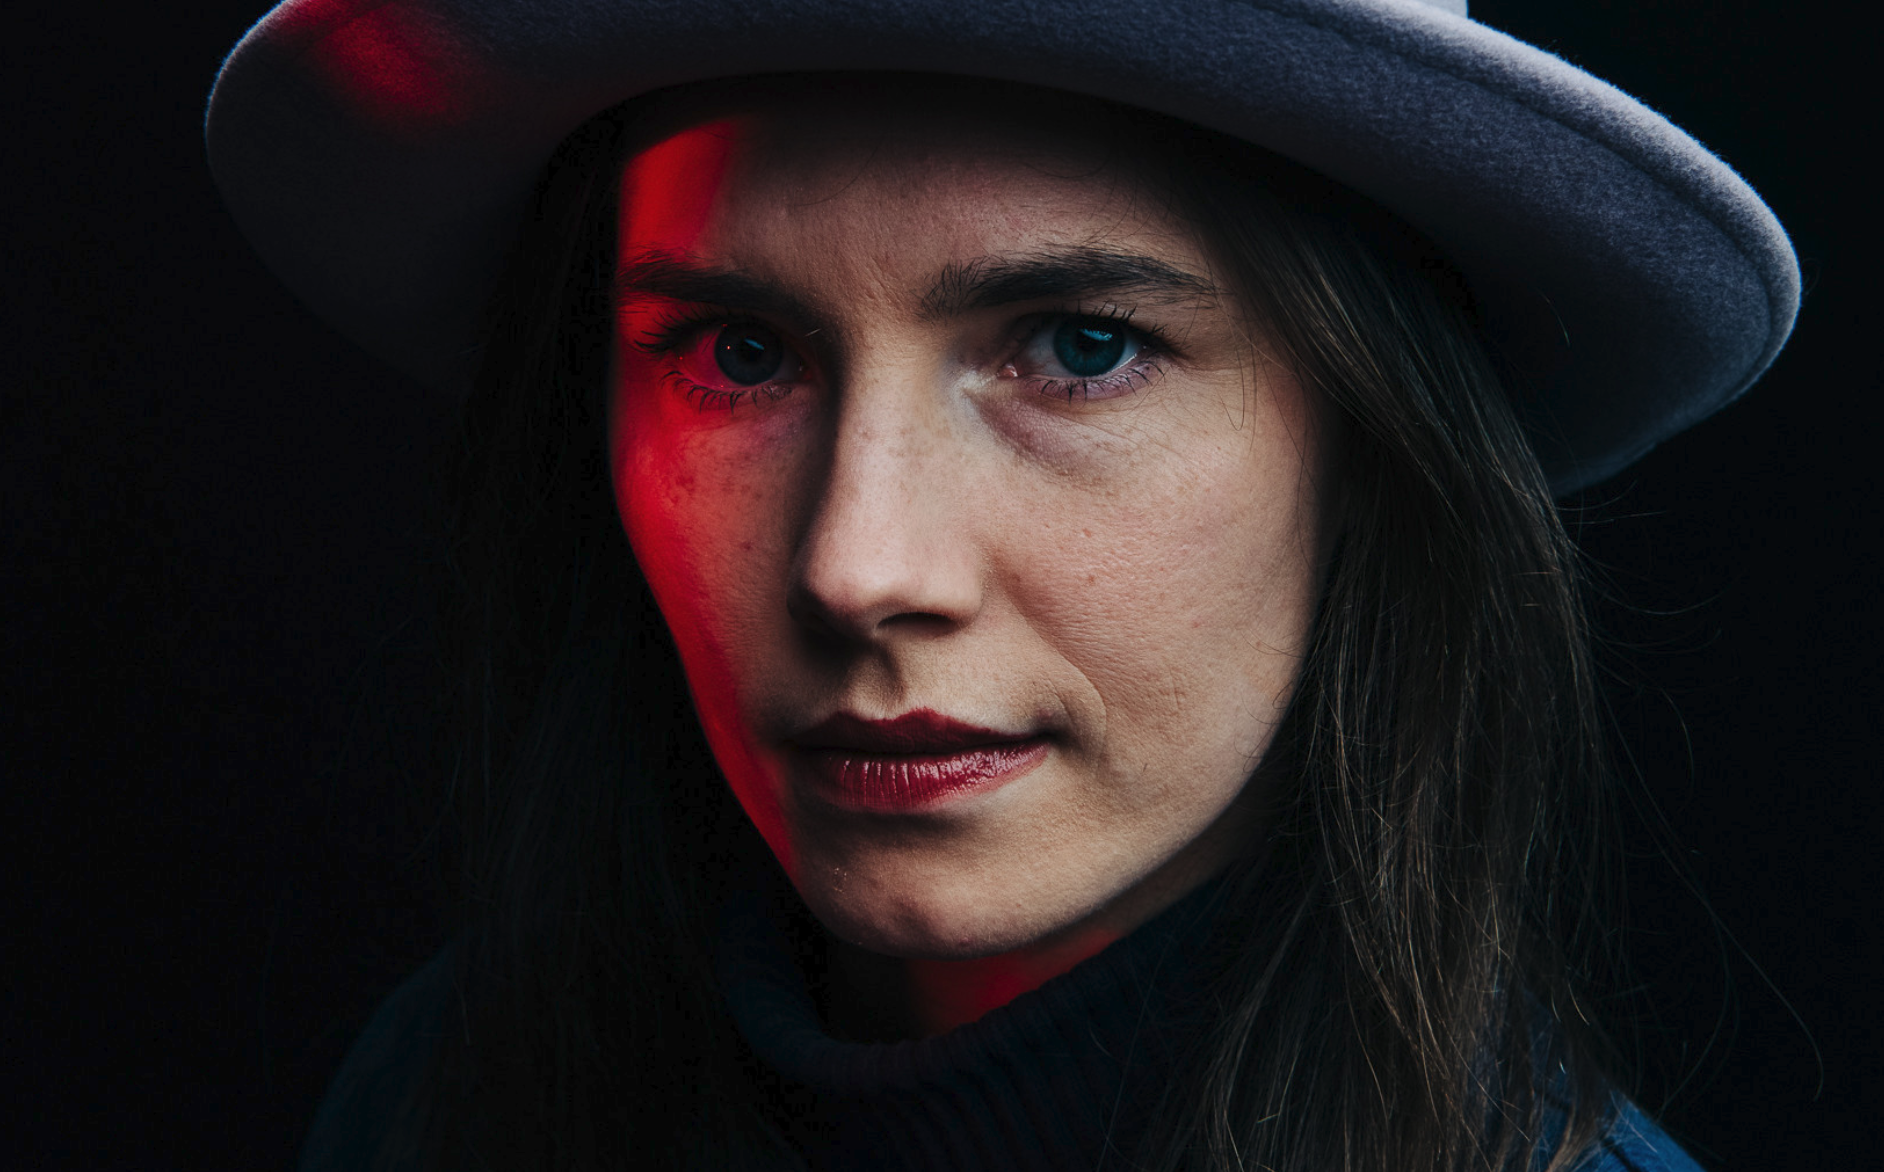 Amanda Knox Talks About What It's Like To Live As 'Other People's Entertainment'